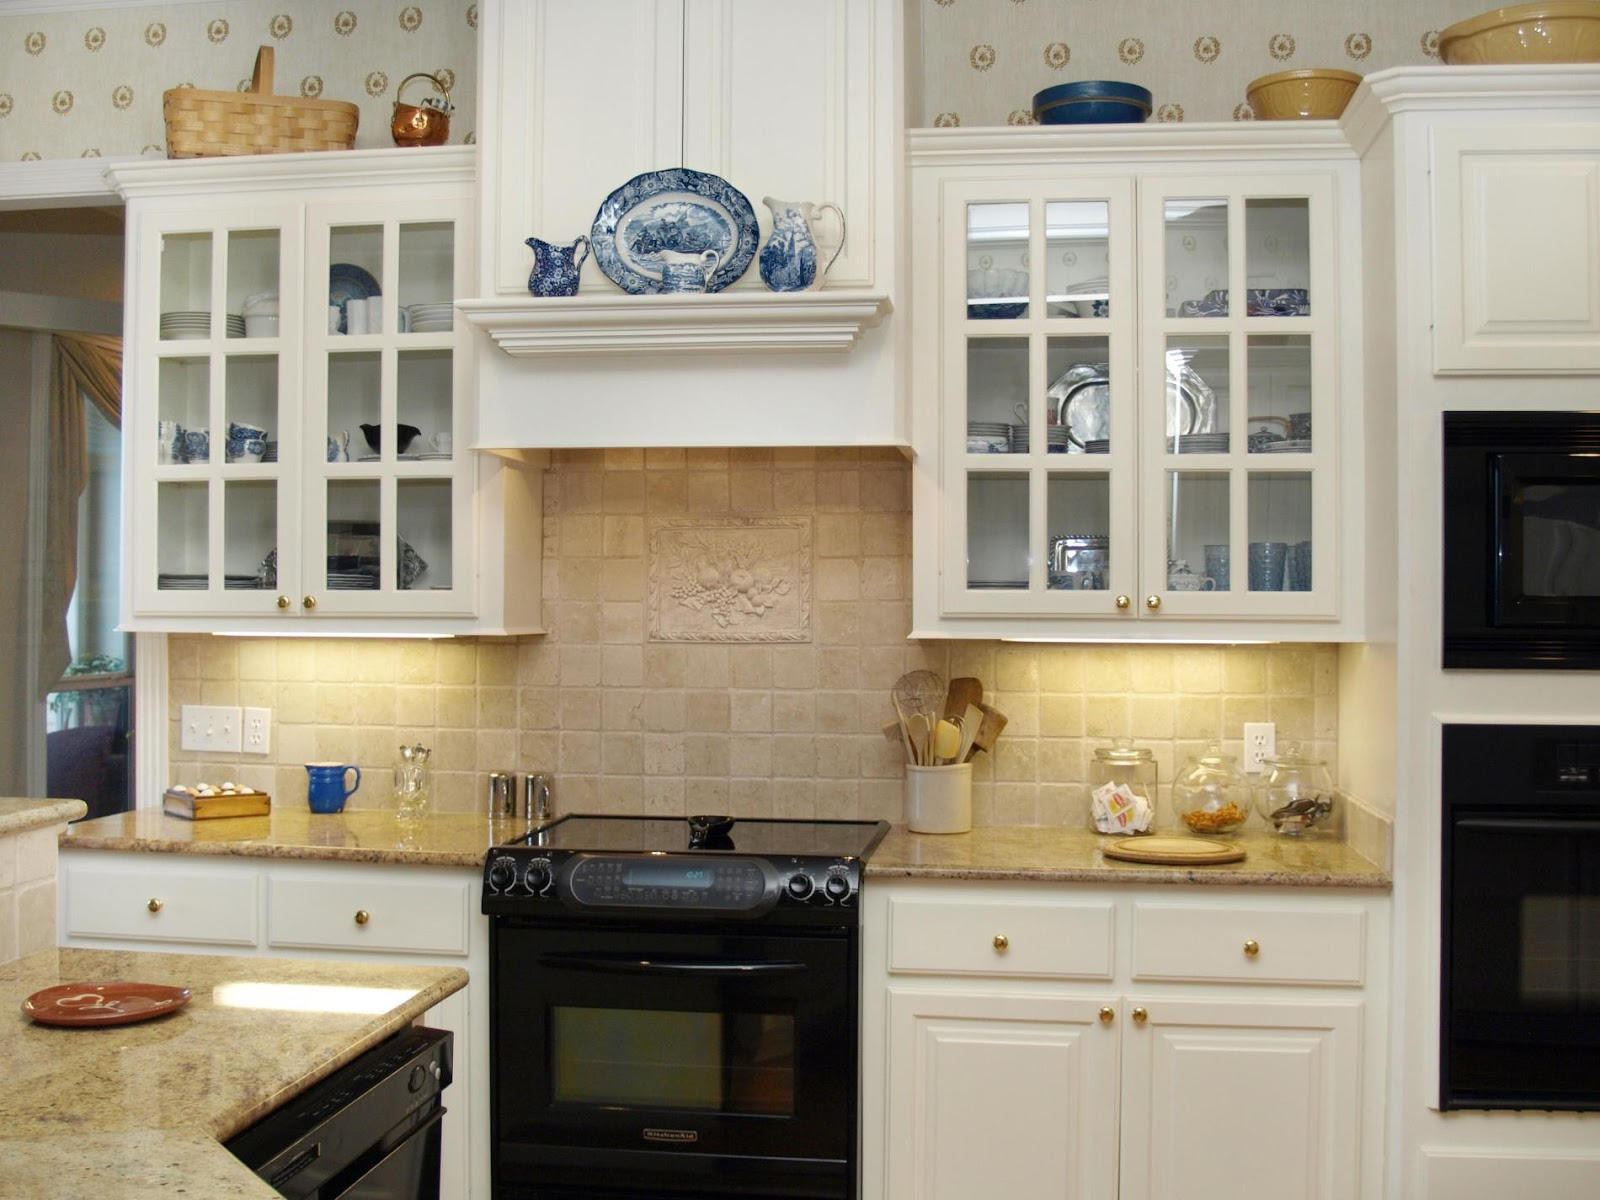 Kitchen shelves decoration dream house experience for Kitchen accessories ideas